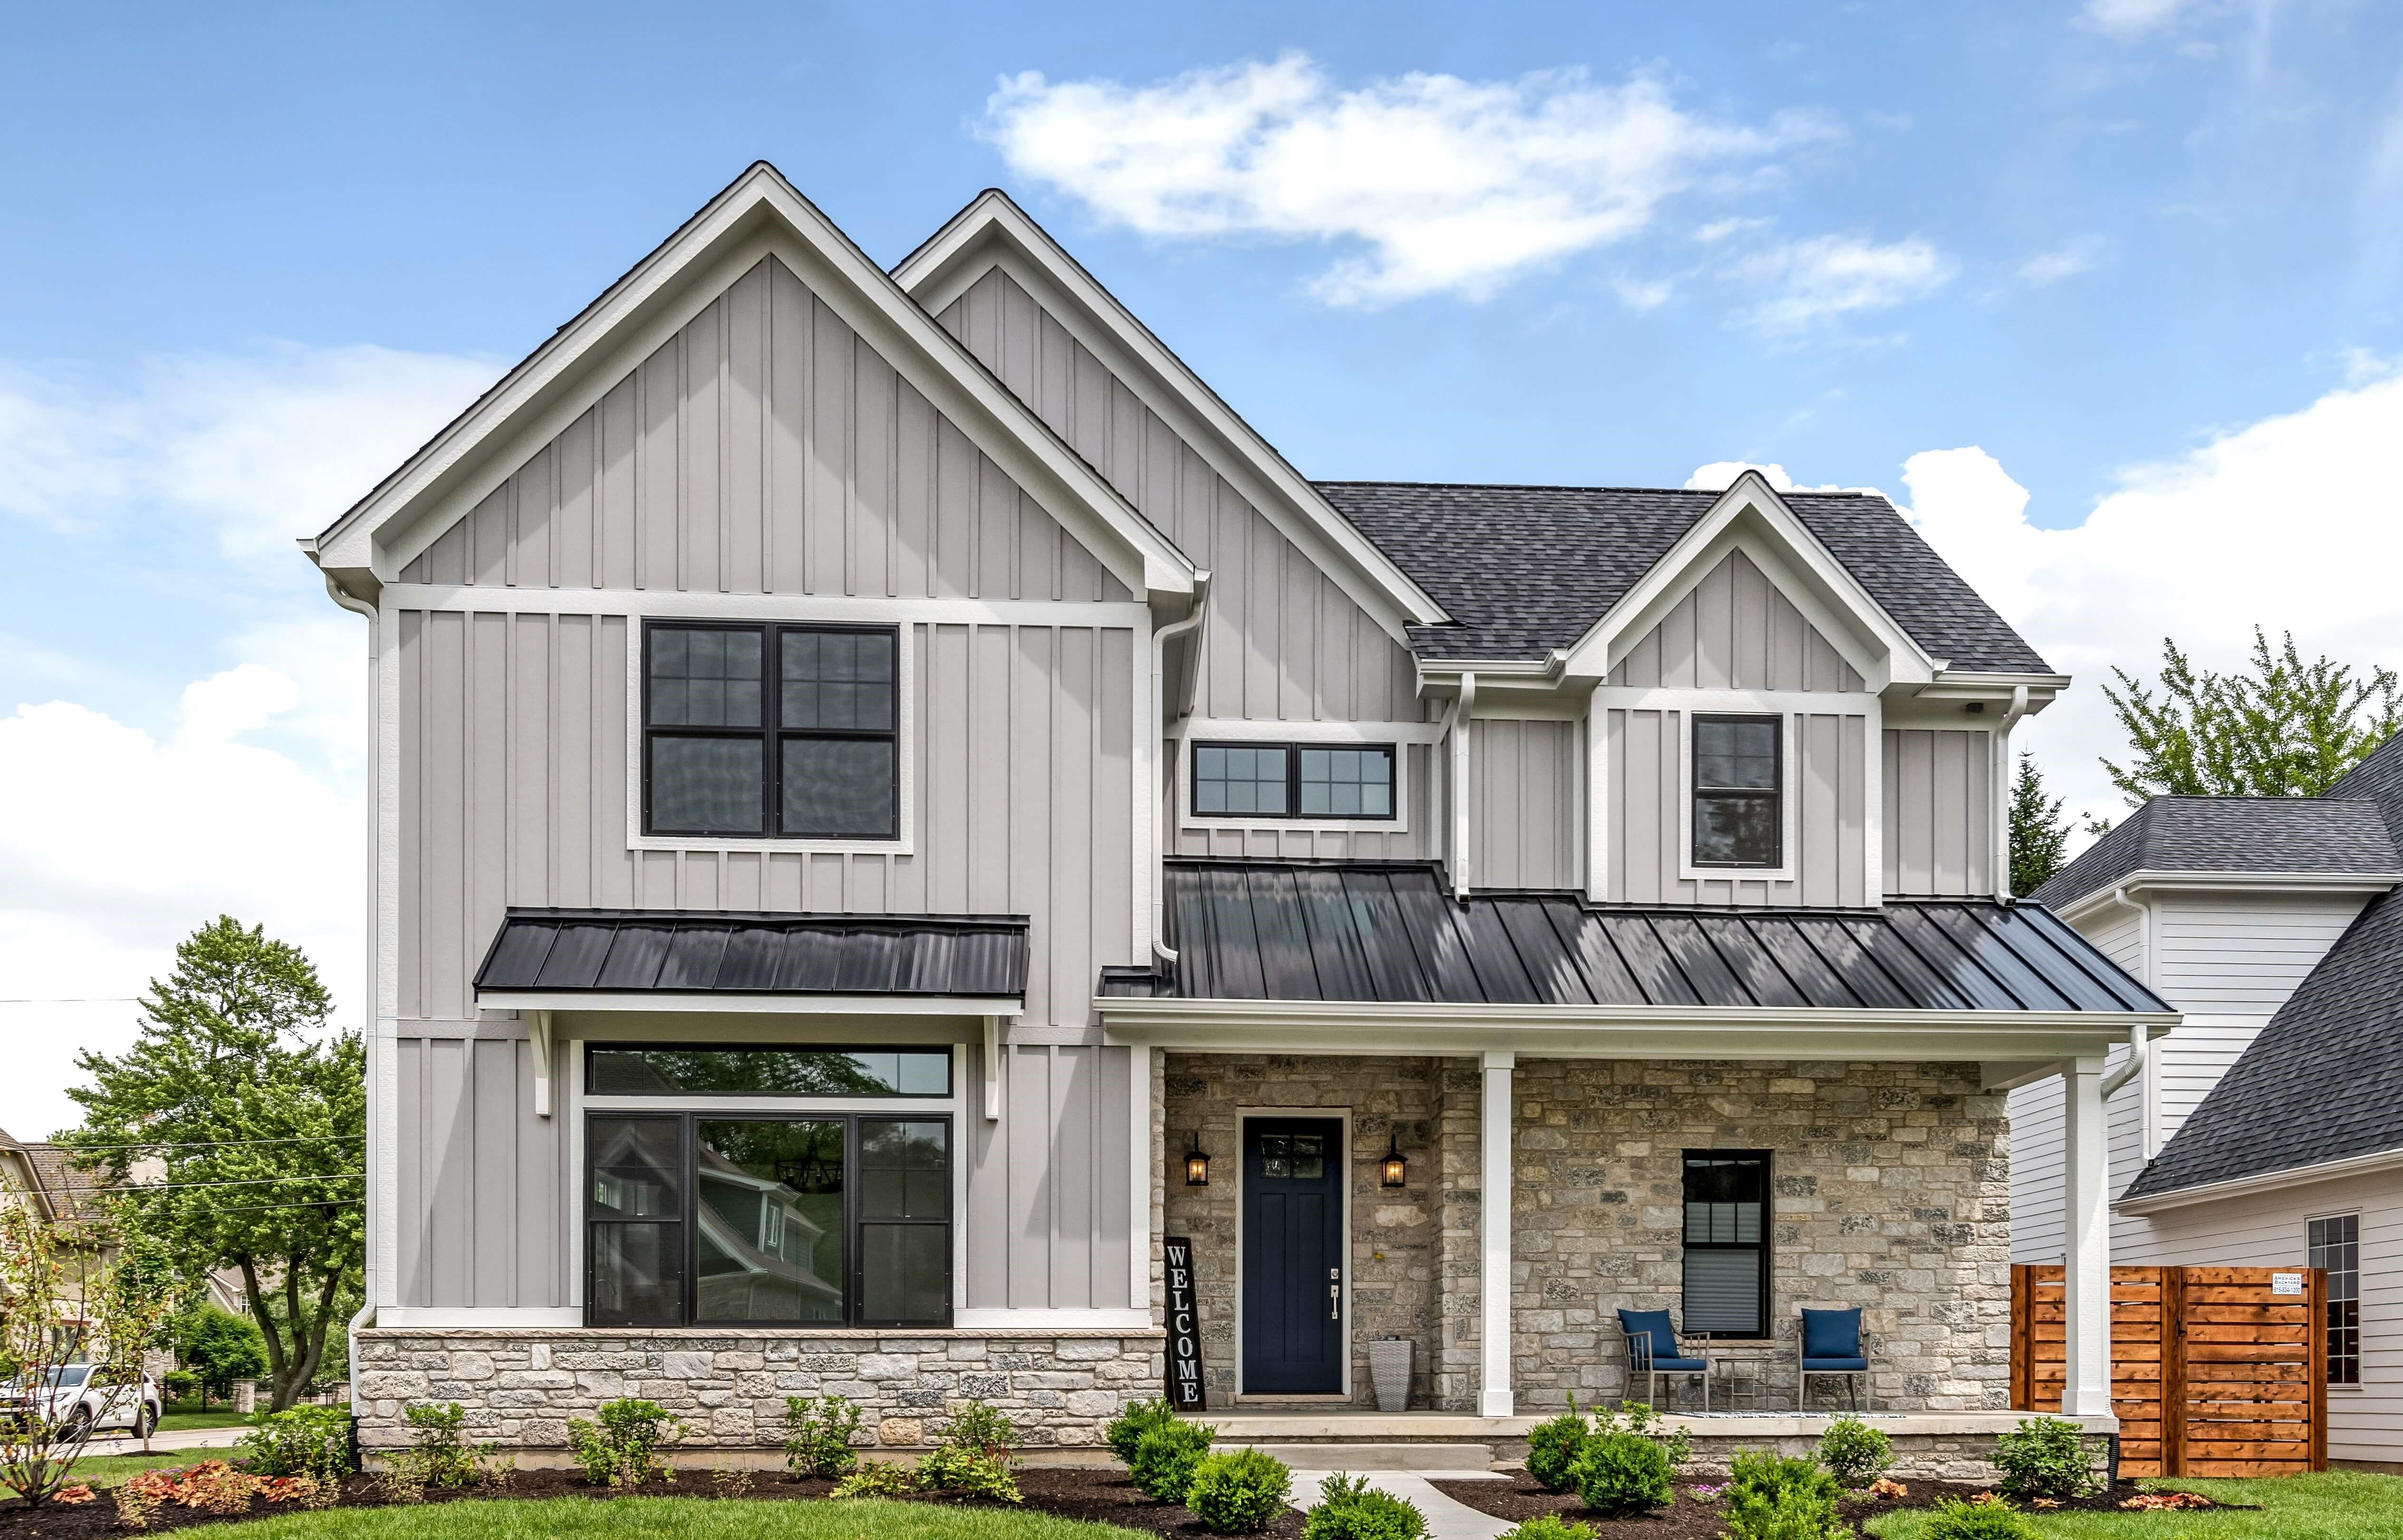 Exterior farmhouse picture complete with windows, grey exterior, black roof and a dark blue door